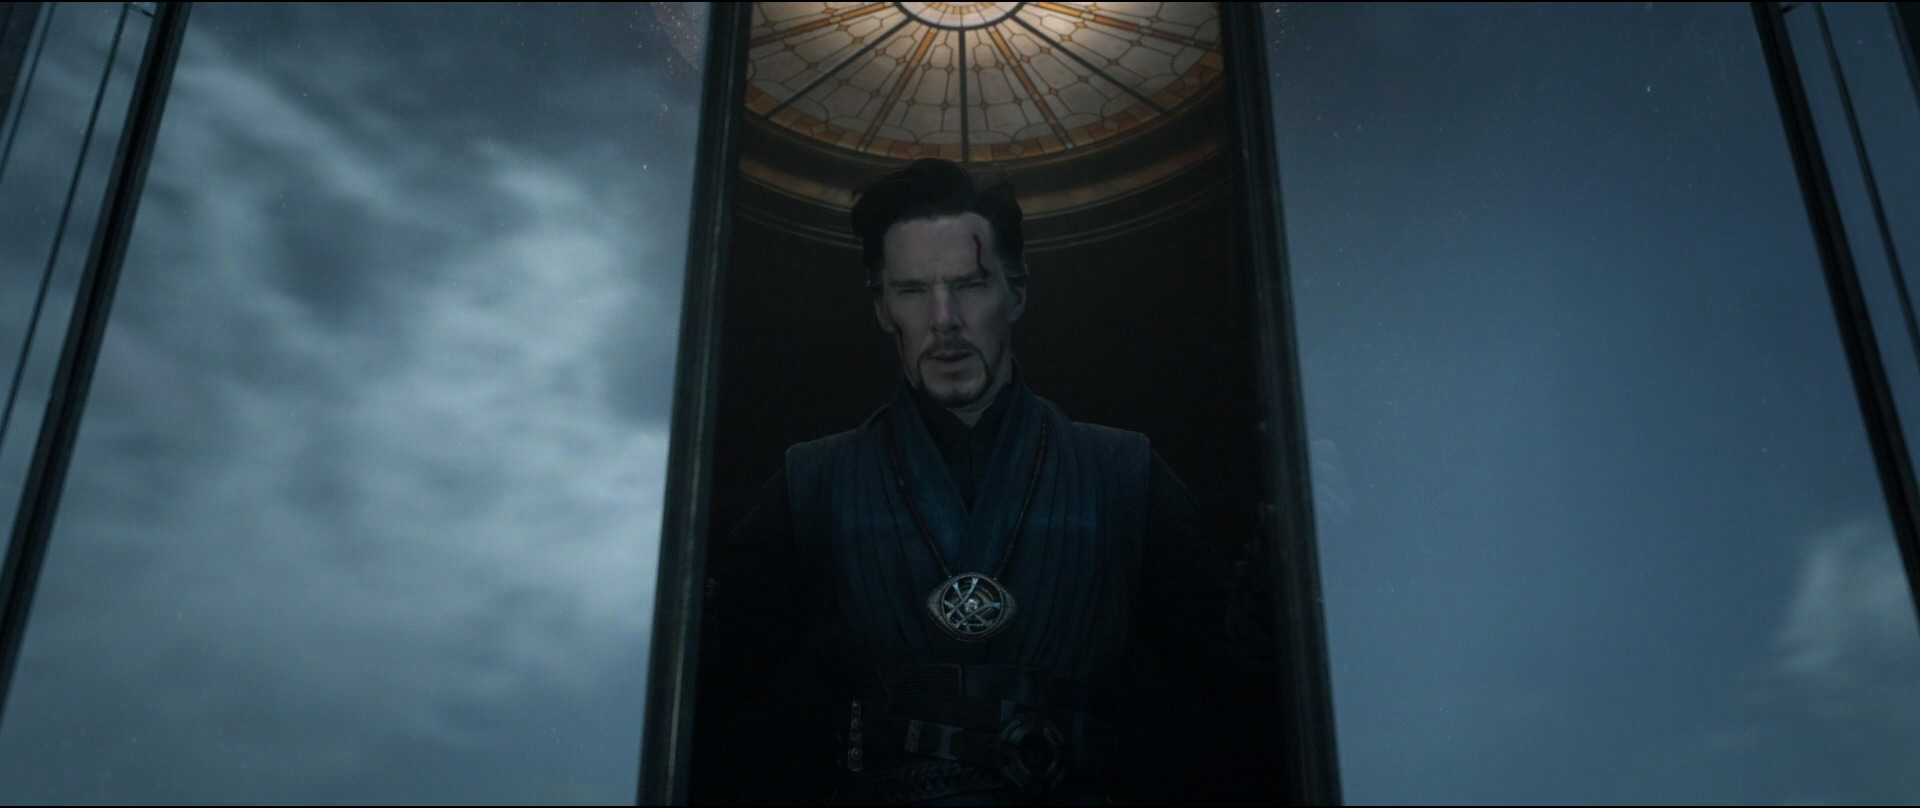 http://caps.pictures/201/6-doctorstrange/full/dr-strange-movie-screencaps.com-6611.jpg